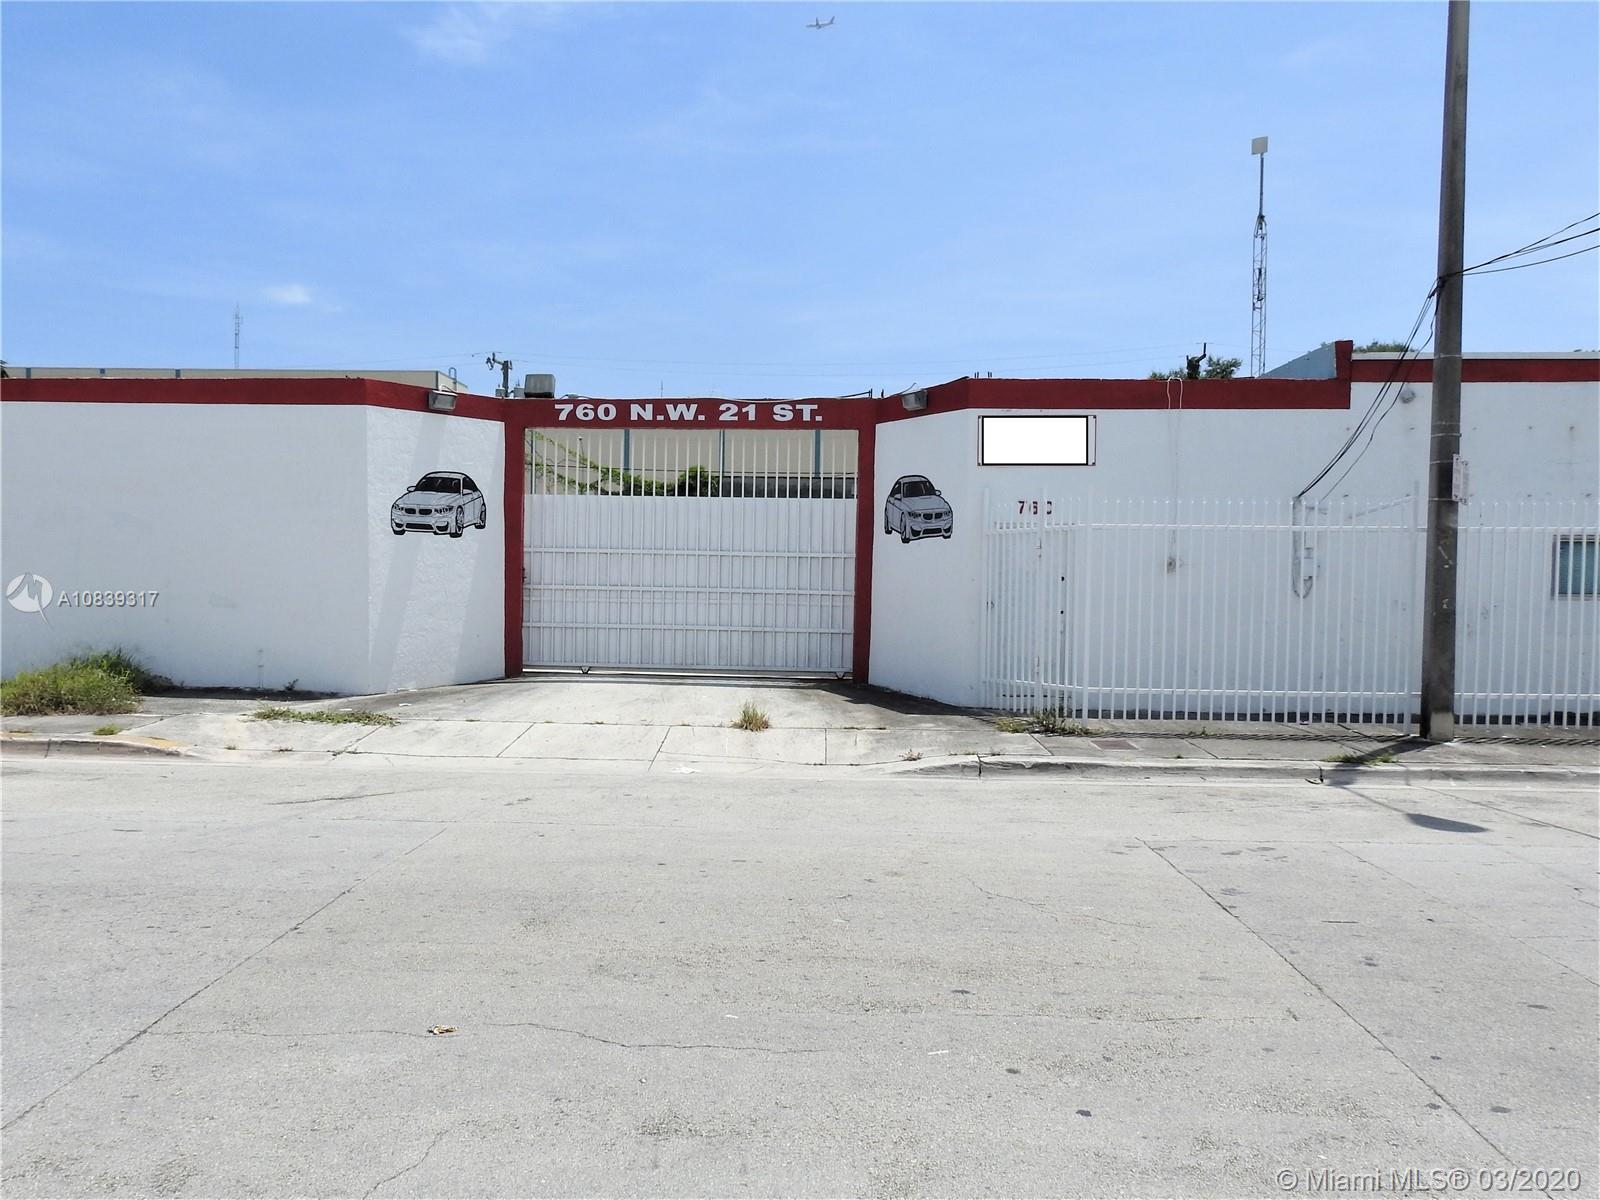 760 NW 21st St, Miami, Florida 33127, ,Land,For Sale,760 NW 21st St,A10839317